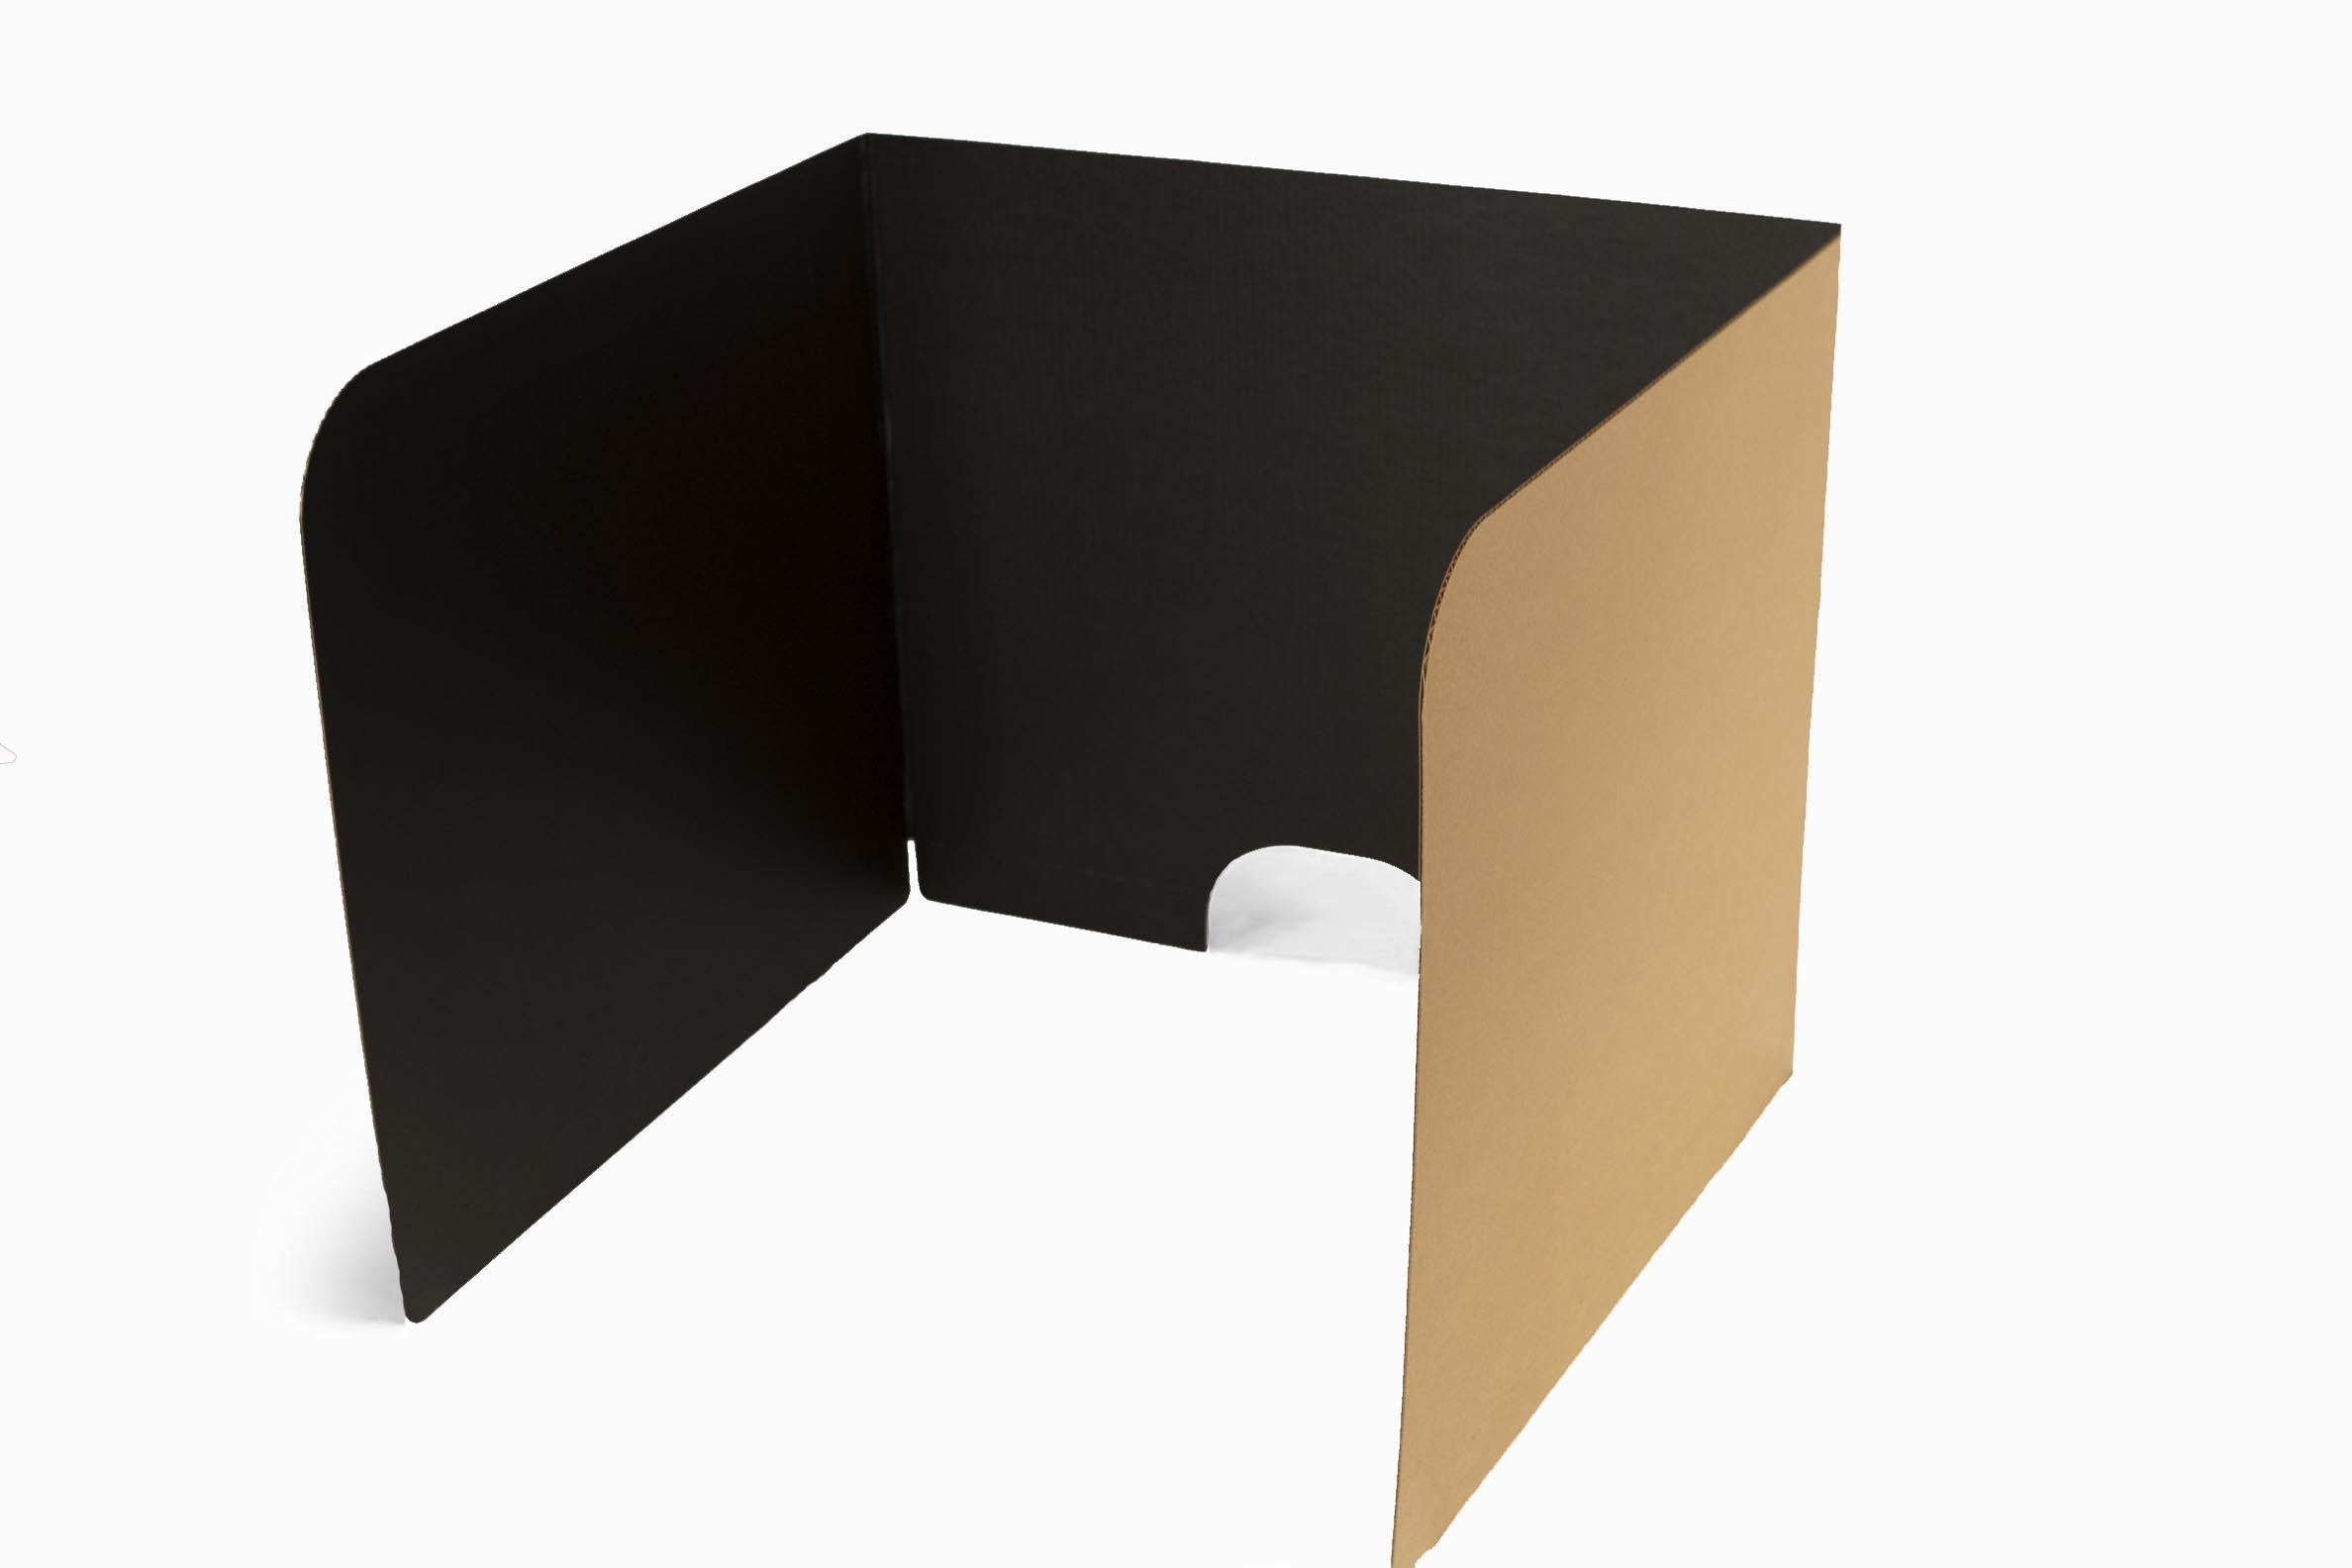 Classroom Products Voting Booth 24 Inch Tall Corrugated Cardboard Portable - Black - (Pack of 10)